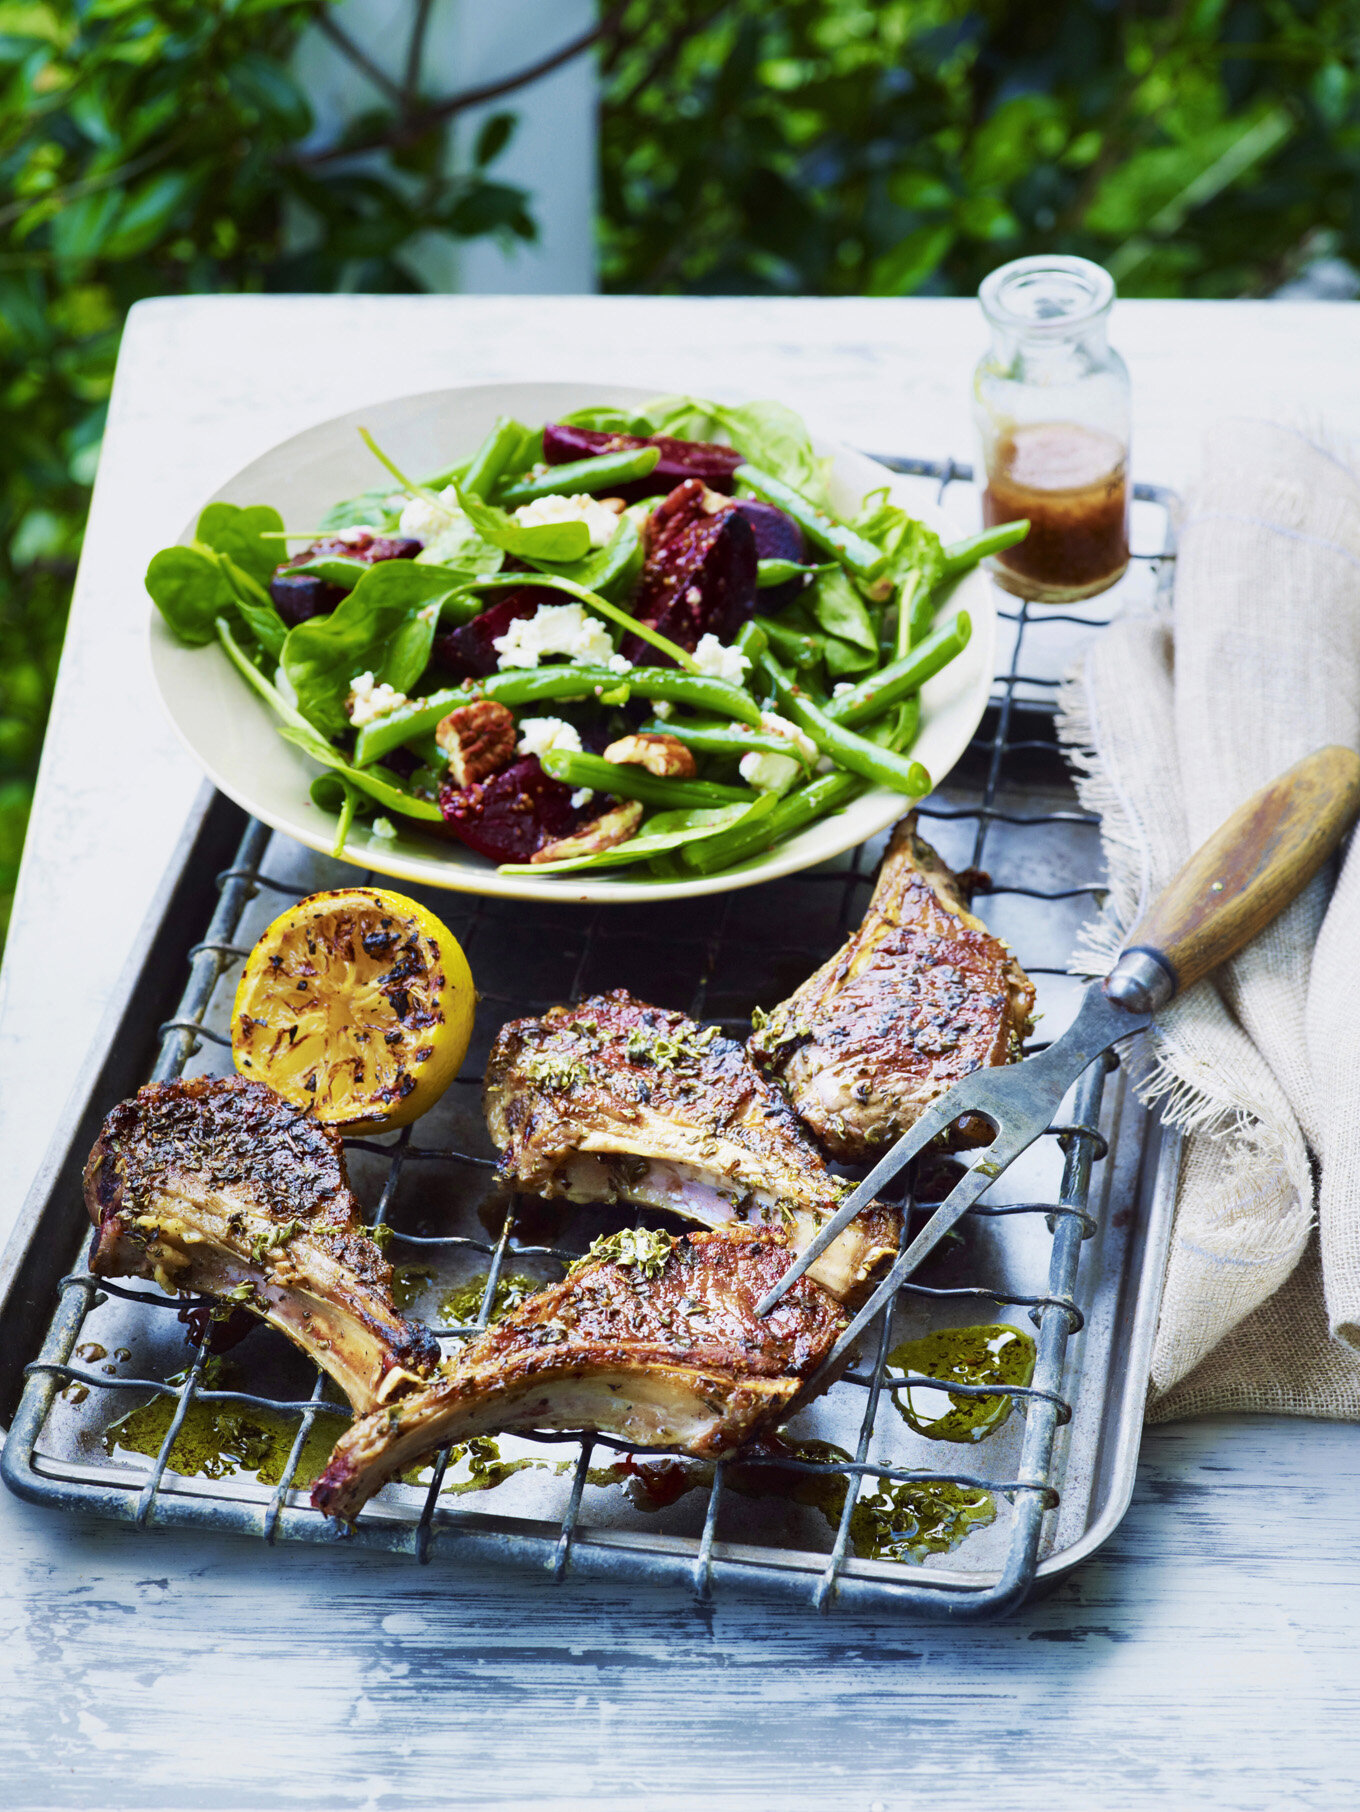 A00880PR Barbecue lamb chops with beetroot salad.jpg